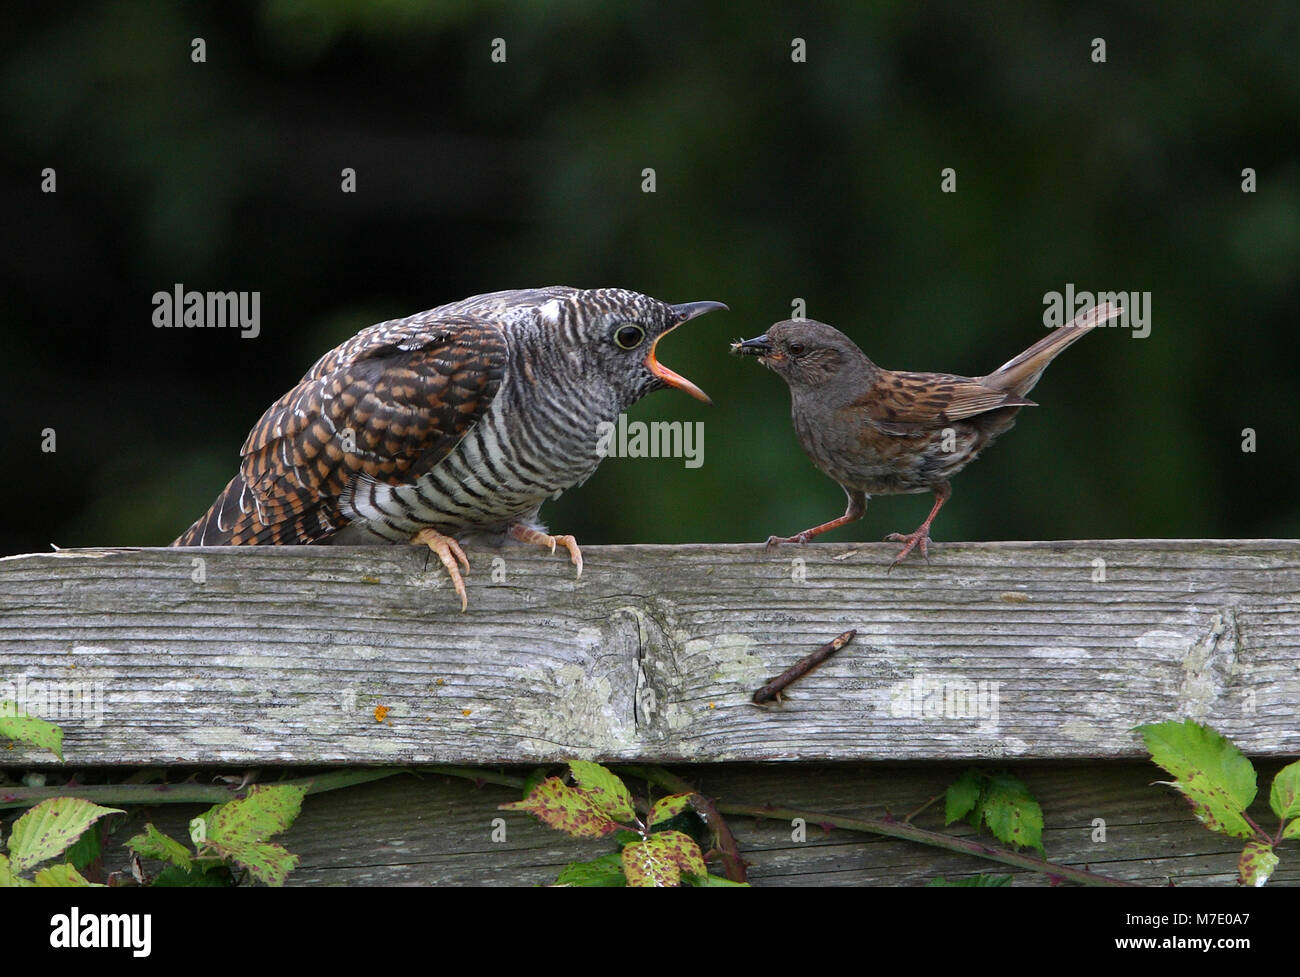 Dunnock perched on fence feeding juvenile Cuckoo  Norfolk               July 2009 - Stock Image